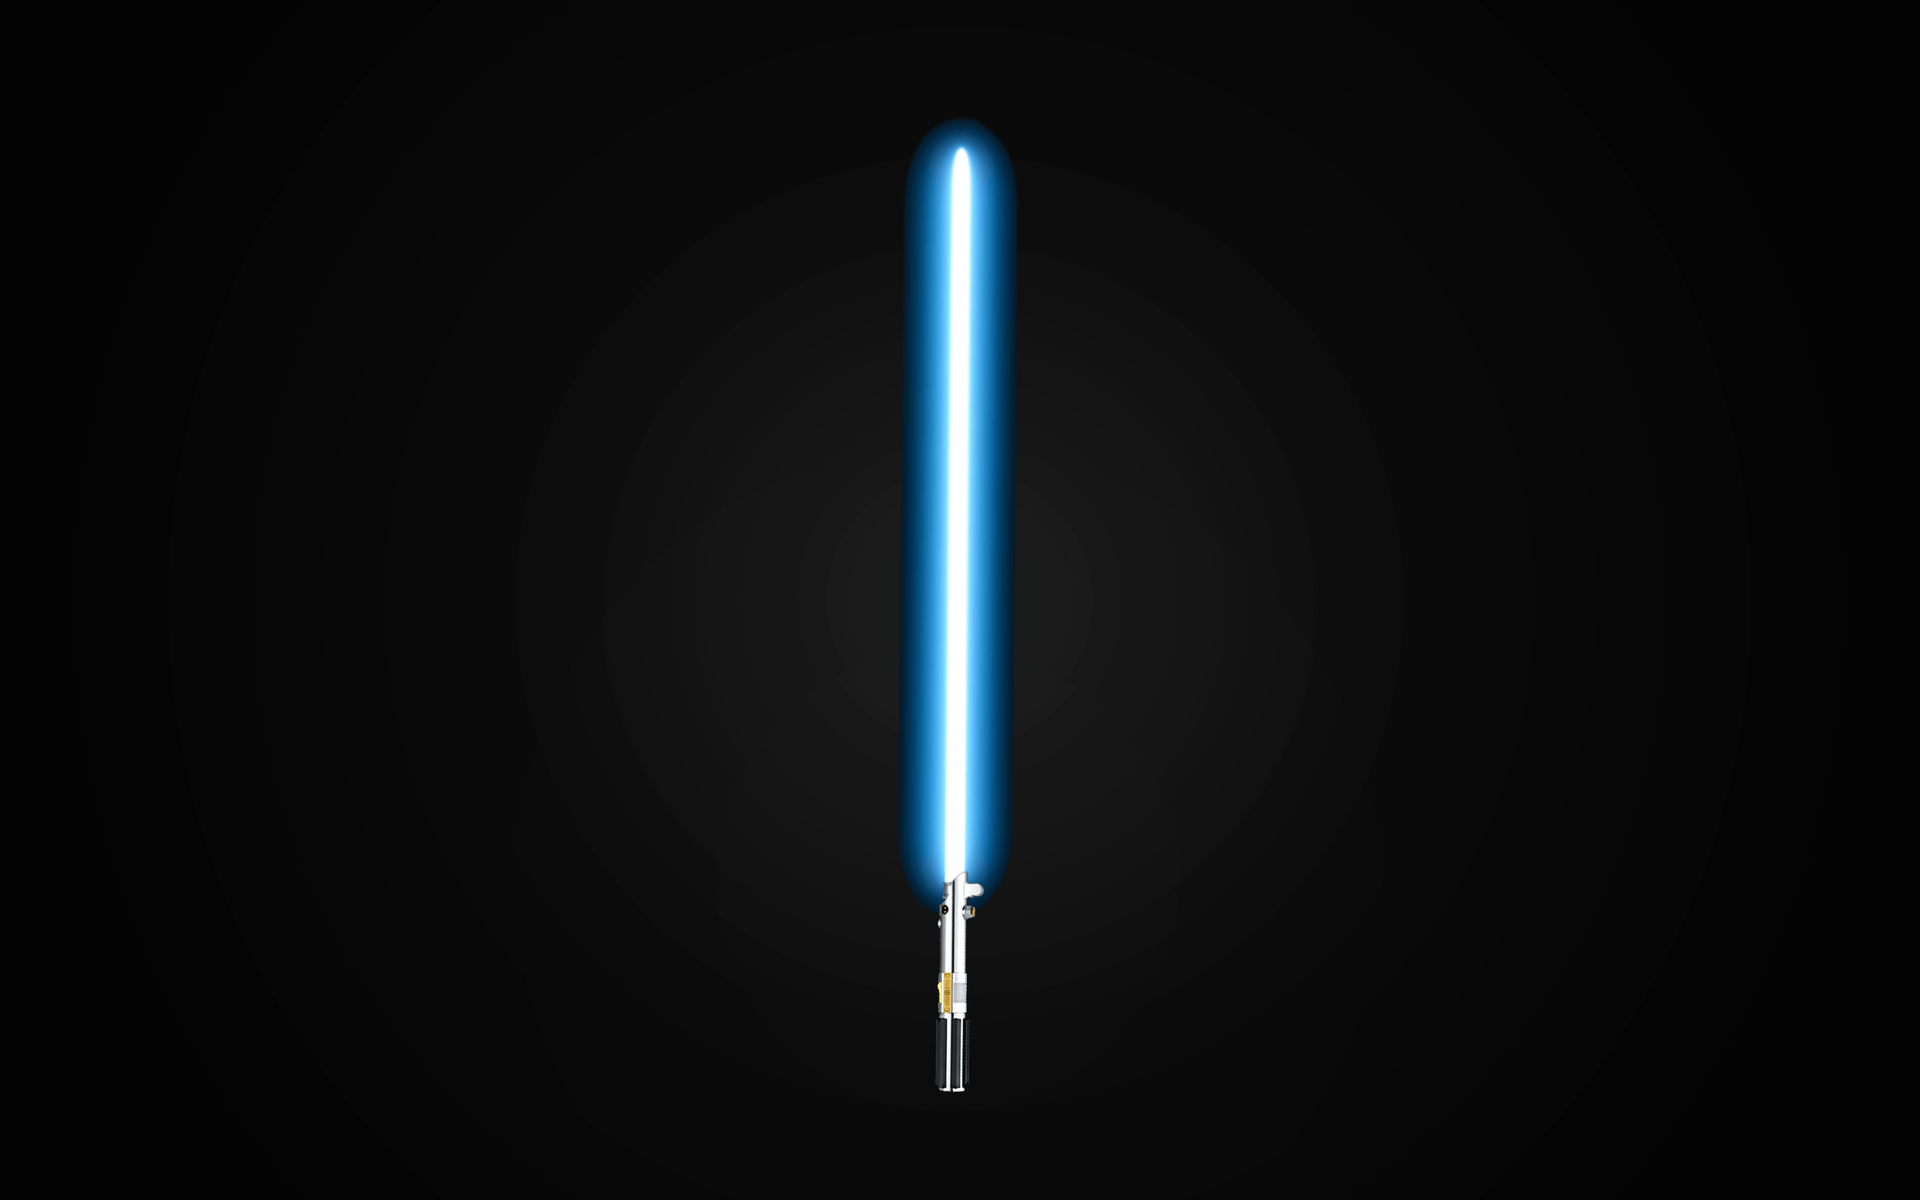 lightsaber wallpapers - wallpaper cave